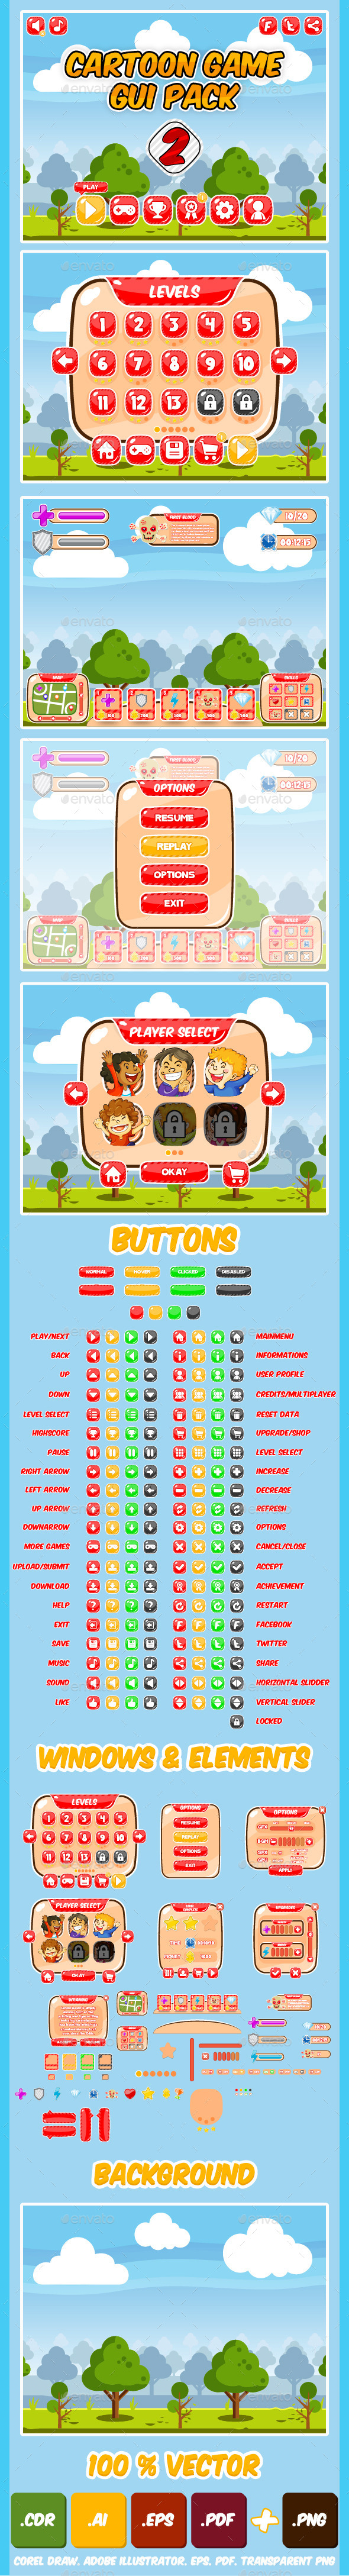 Kids Game UI Kit Pack 2 - Game Kits Game Assets